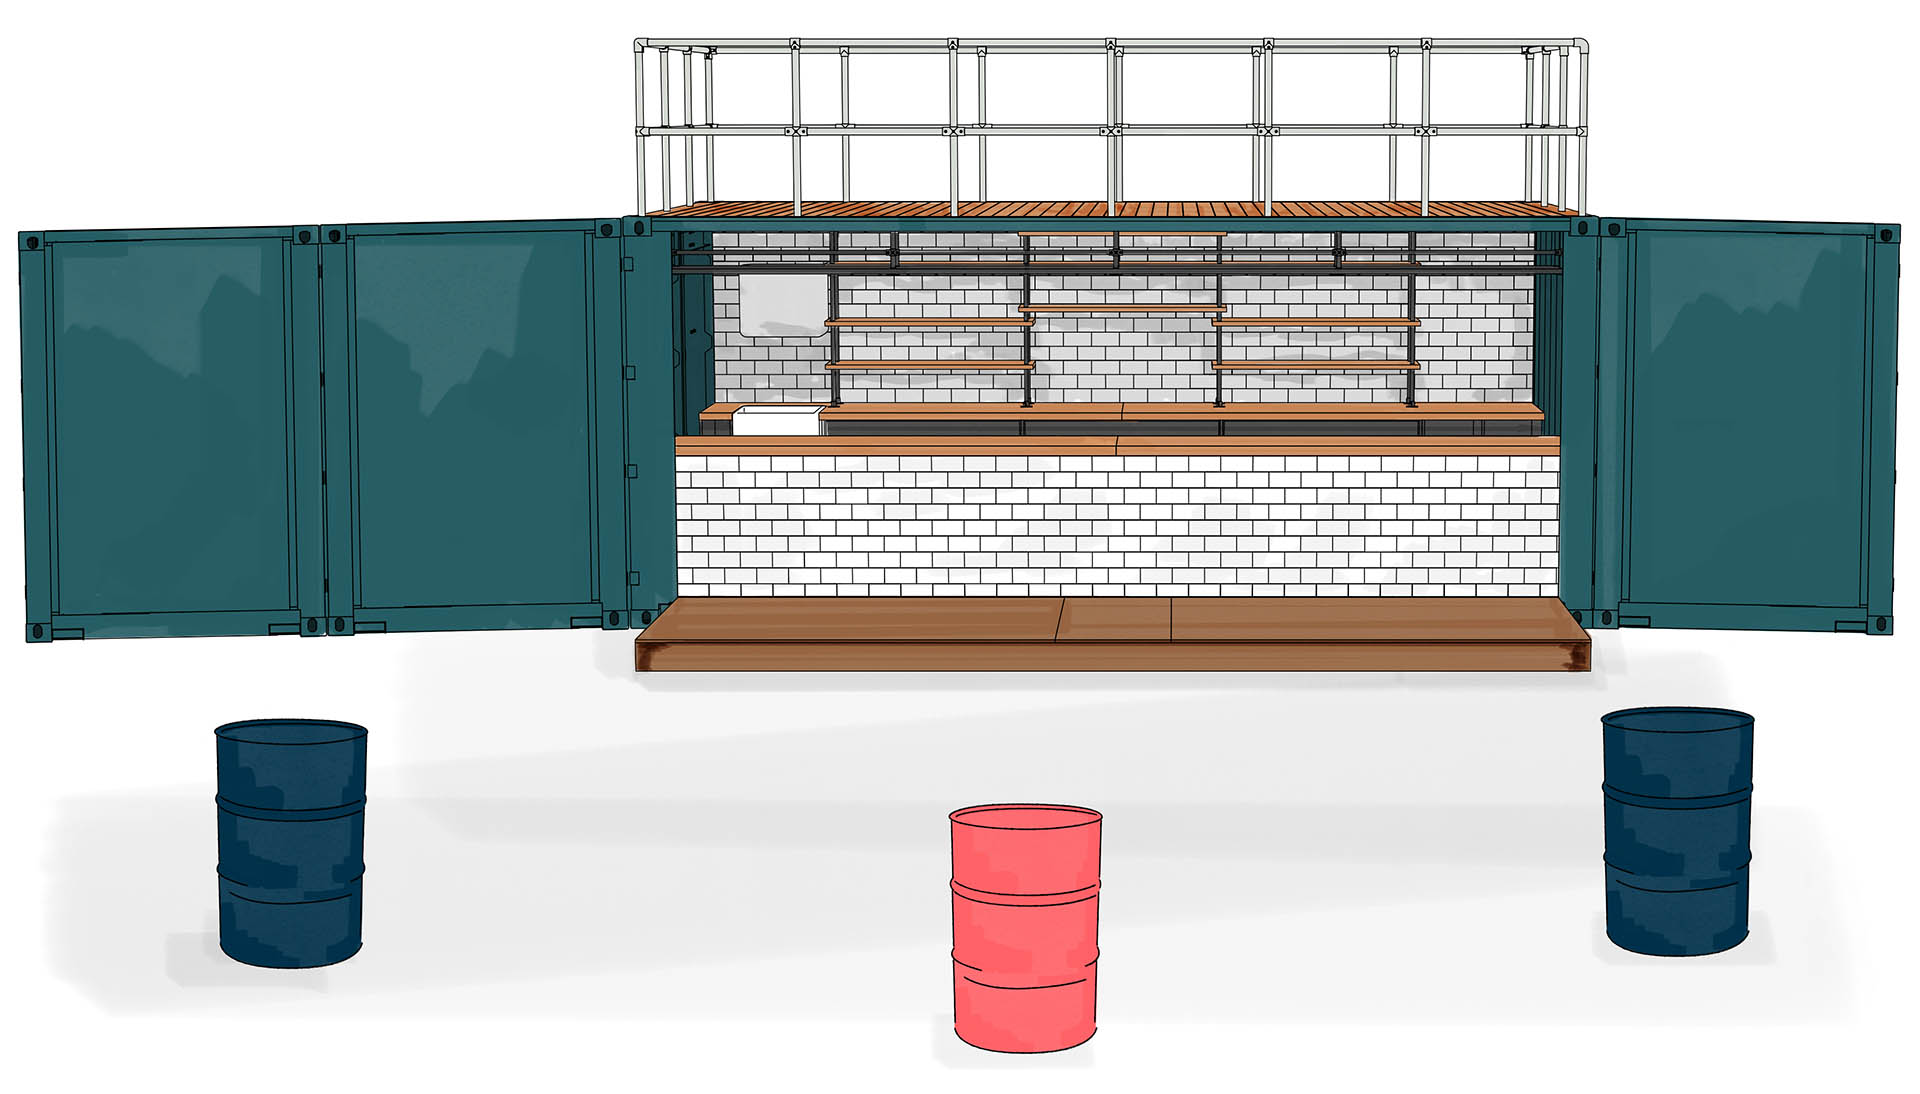 Amfora London Container Bar as a Special Supply